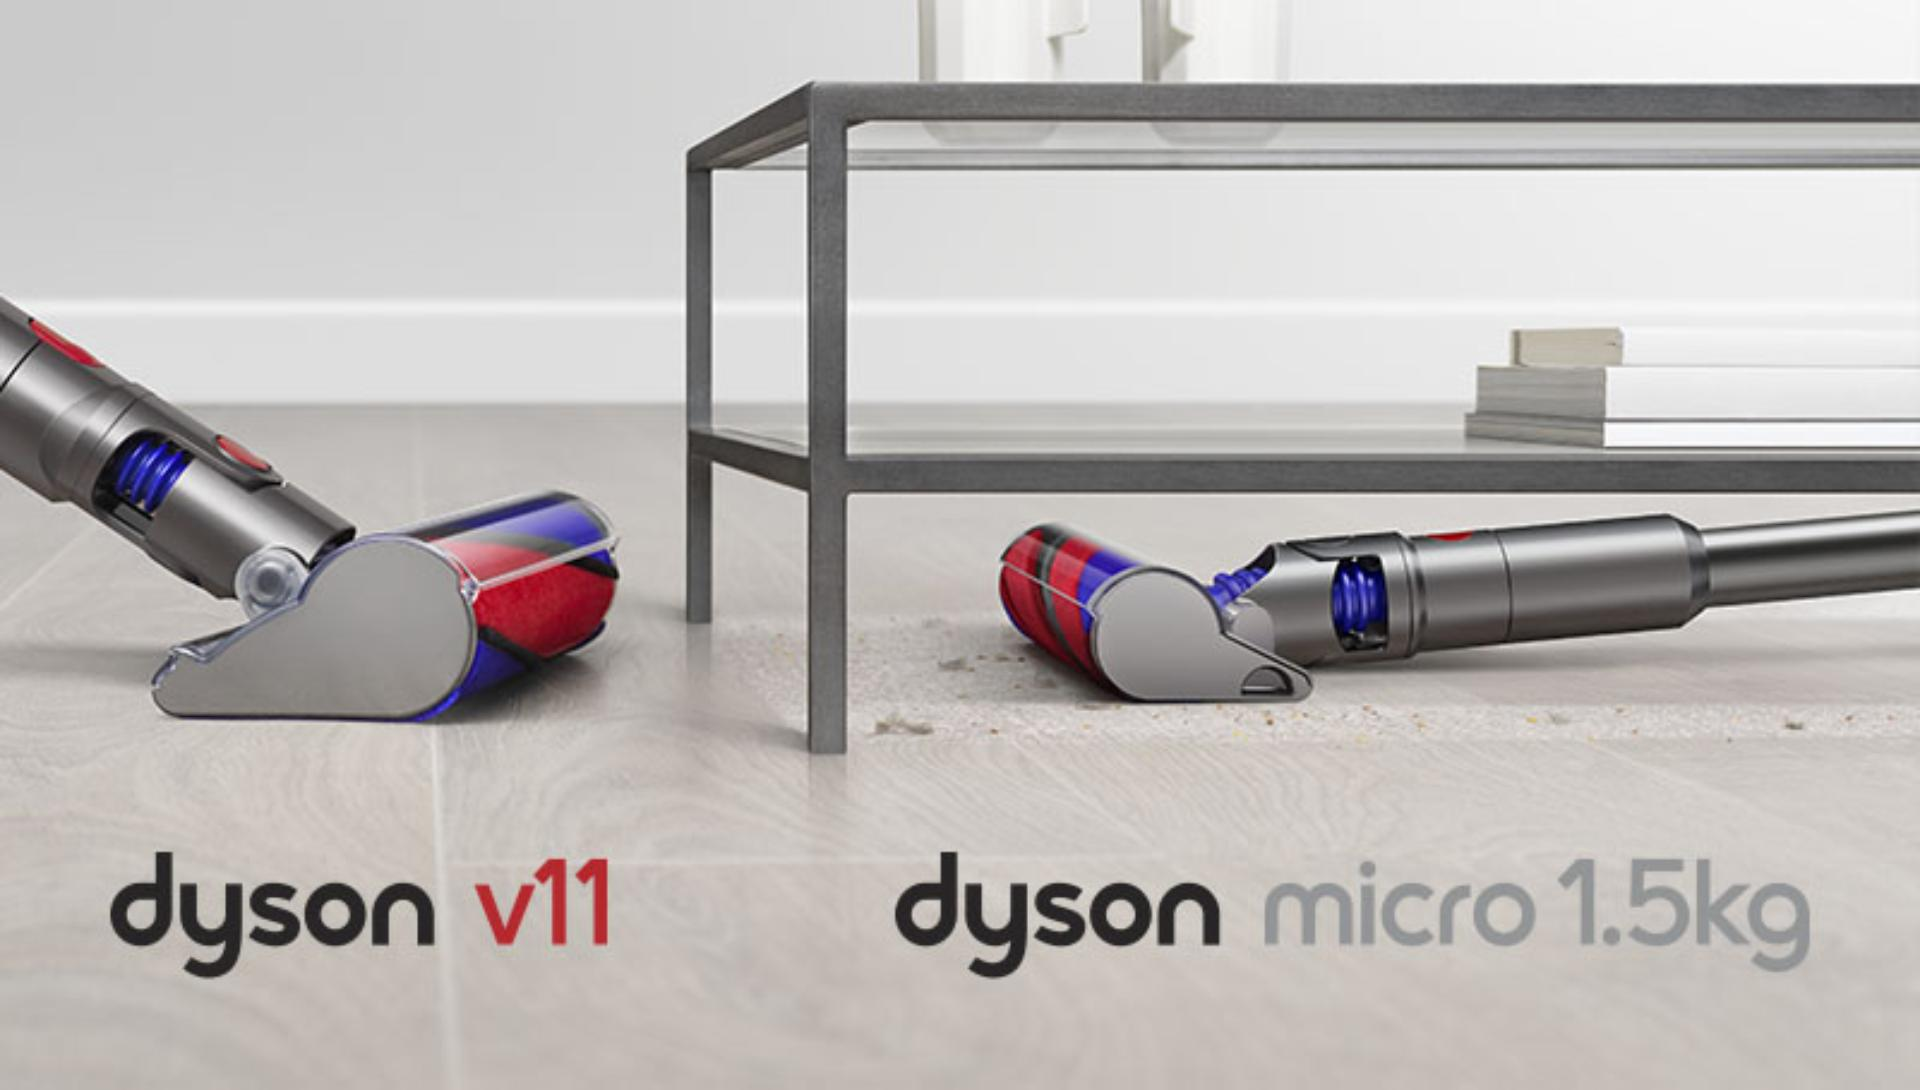 Dyson Micro 1.5kg cleaner head cleaning under a table, in comparison to Dyson V11 cleaner head